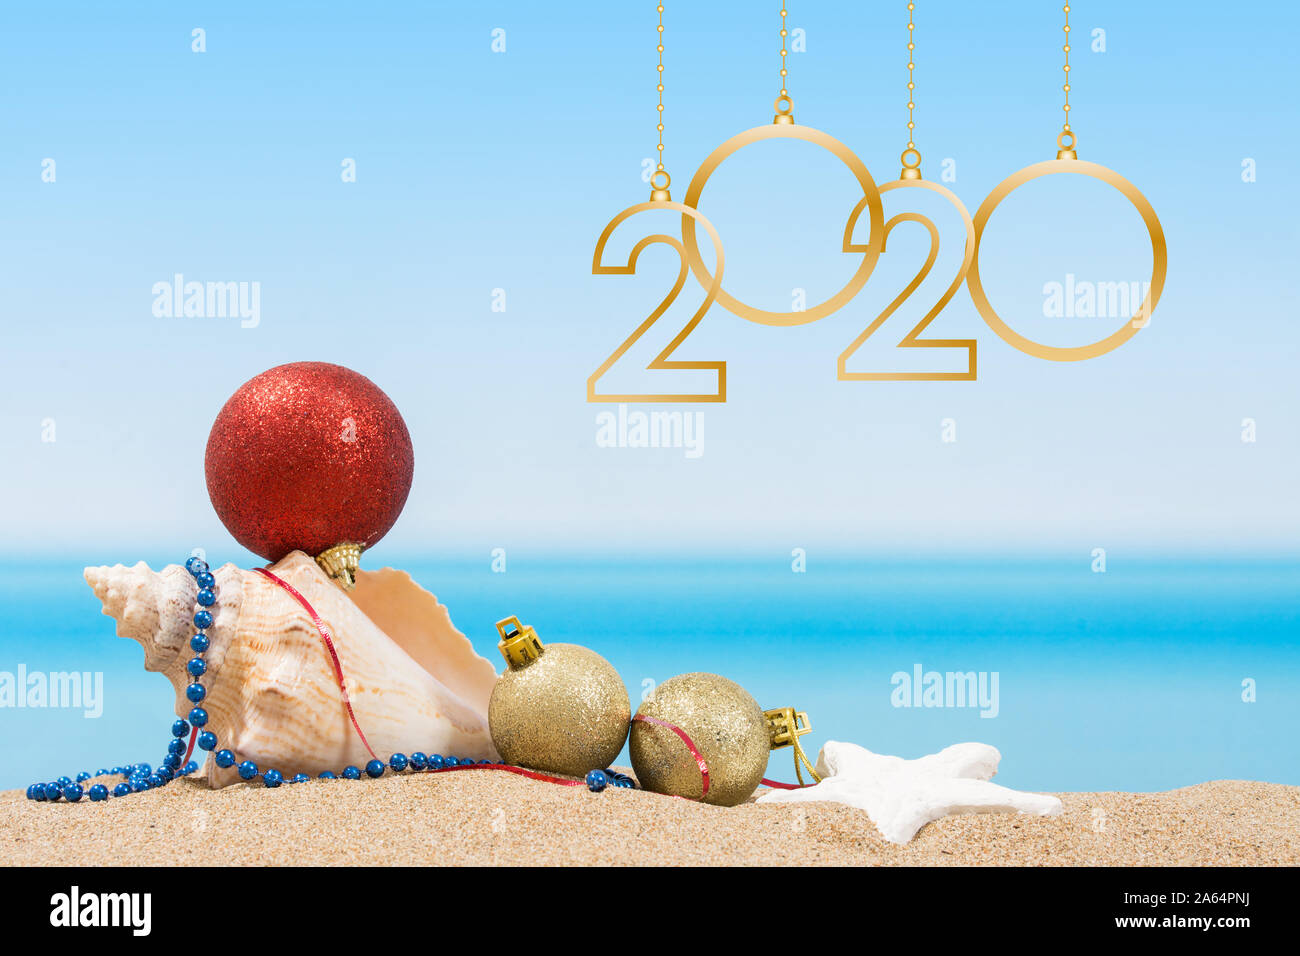 Beach Vacation Christmas 2020 new year 2020. Christmas tree decorations on the beach in tropical